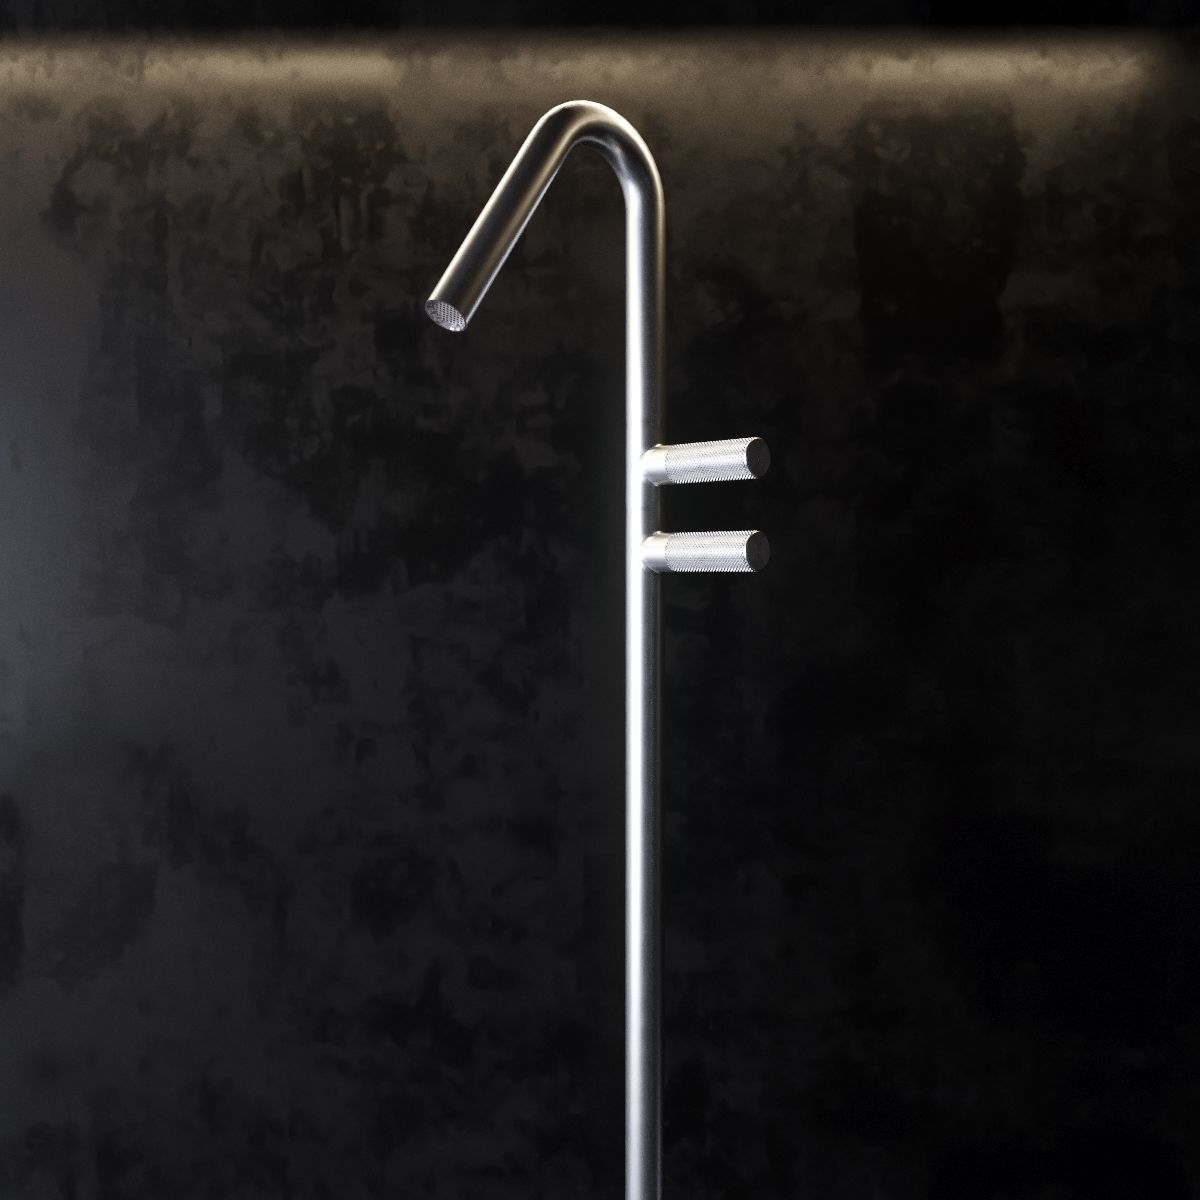 3D Faucets Rubinetterie Treemme | CGTrader